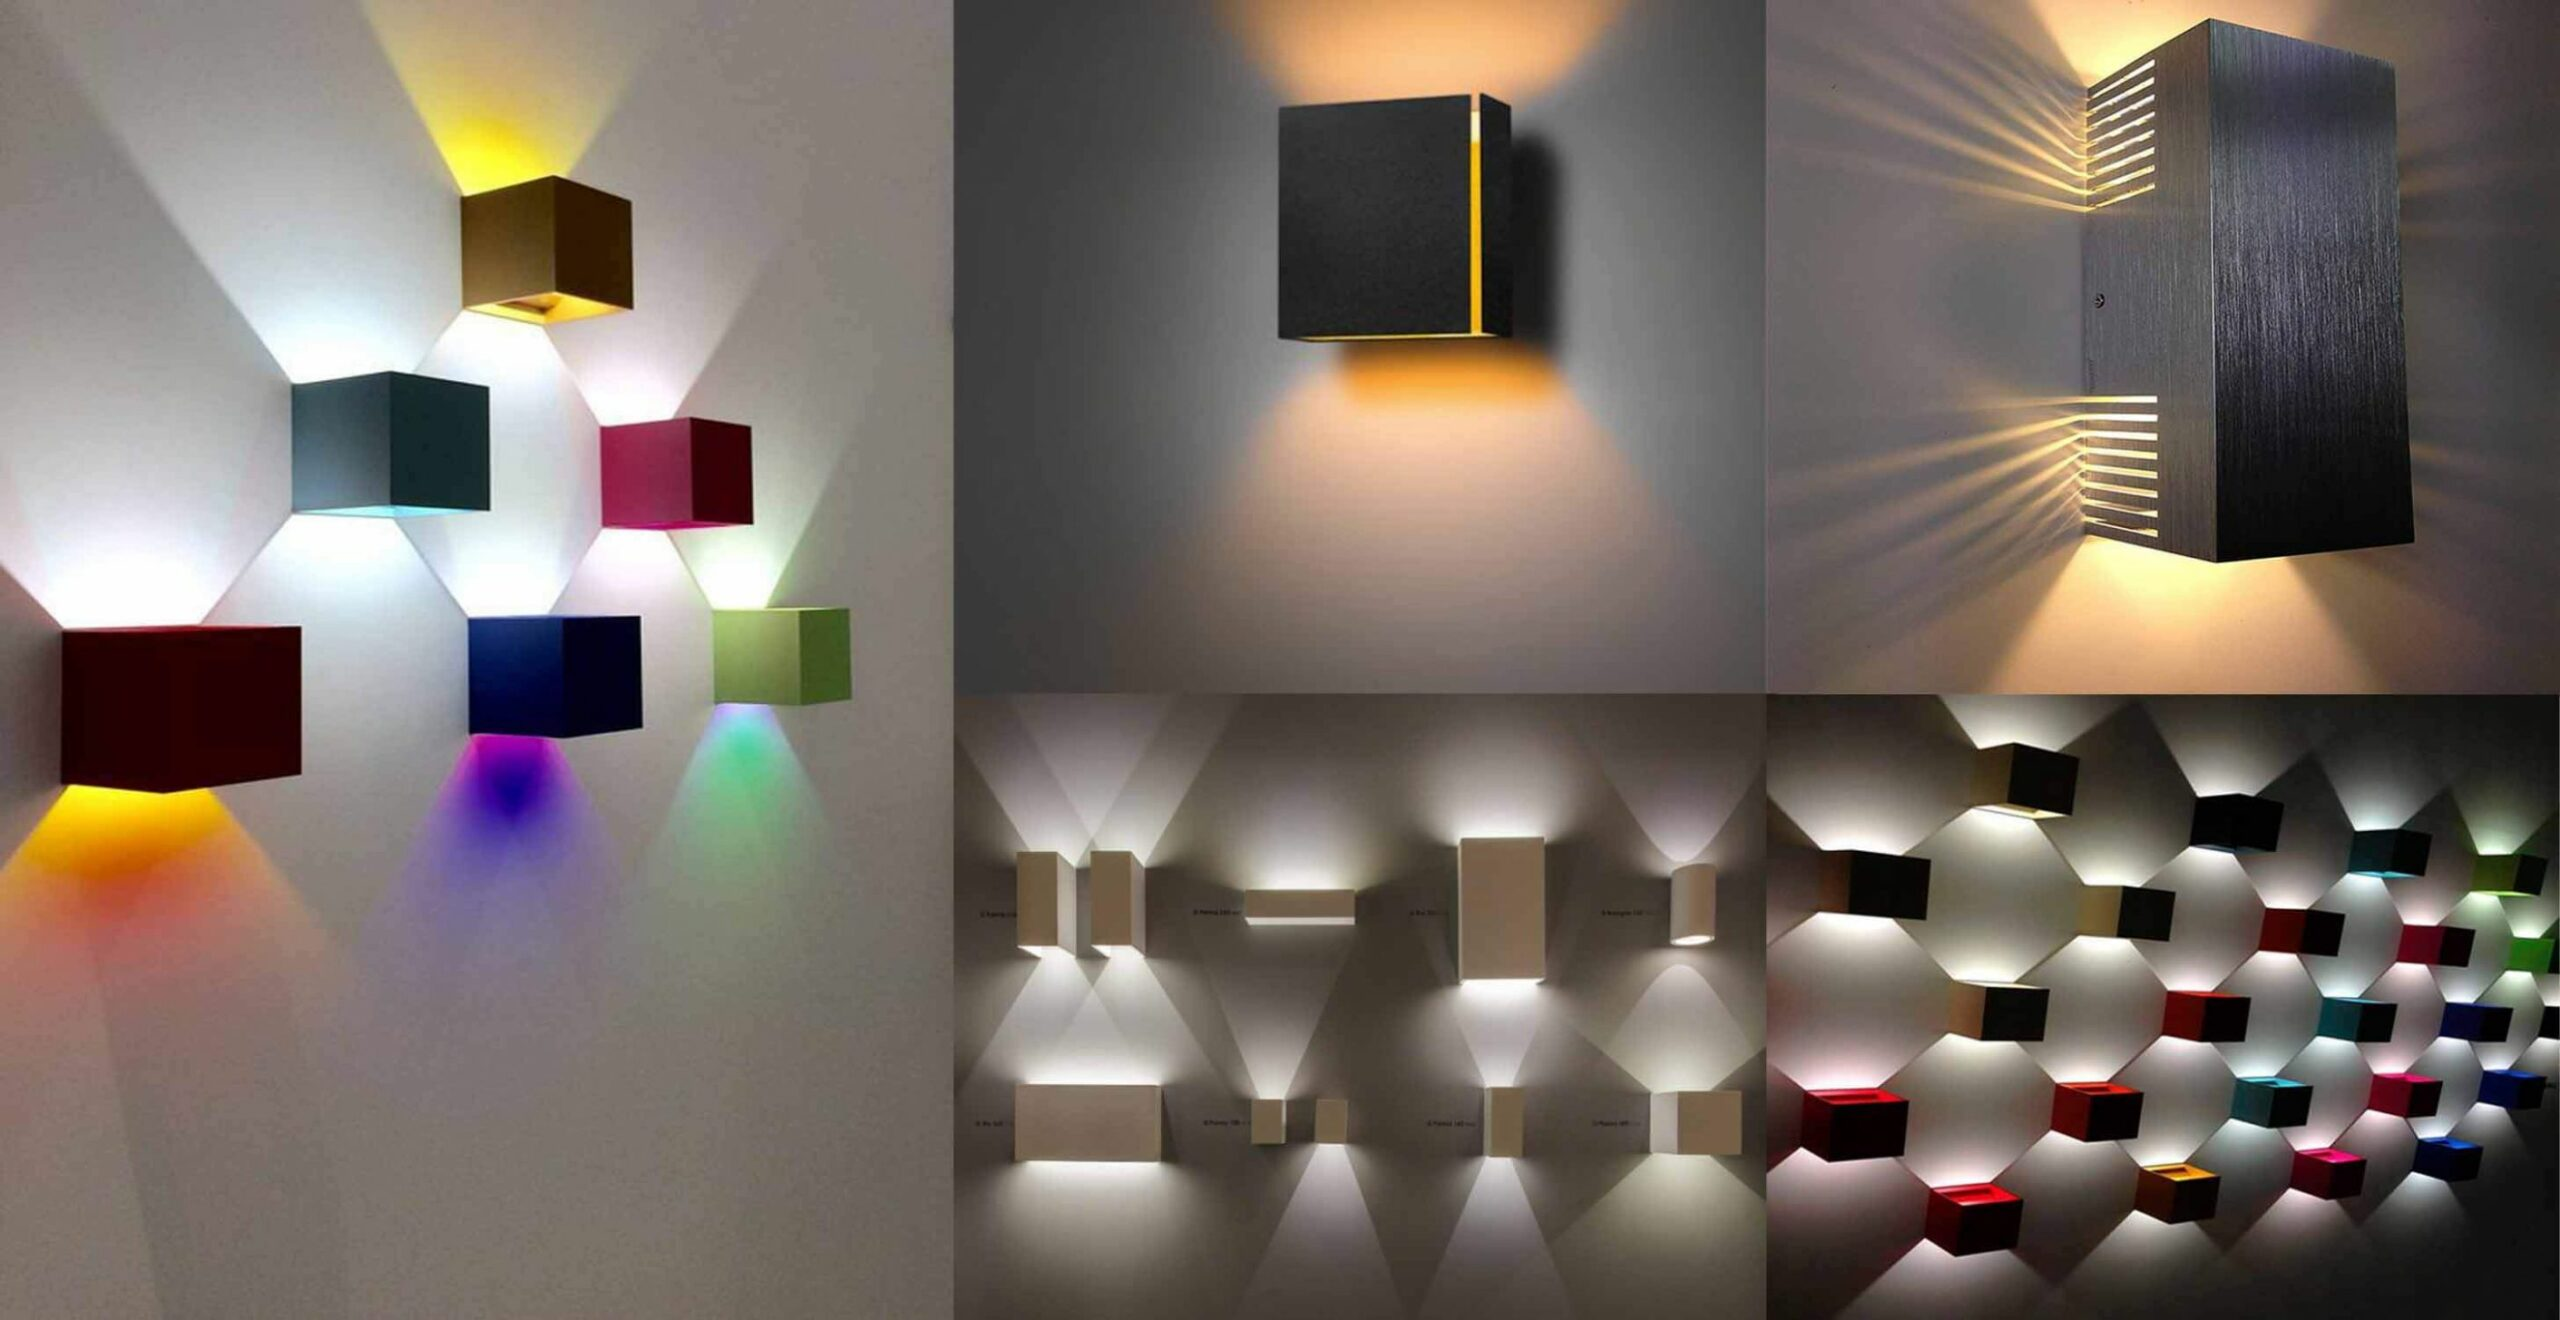 Amazing Wall Lighting Design Ideas - Engineering Discoveries - wall decor ideas lights